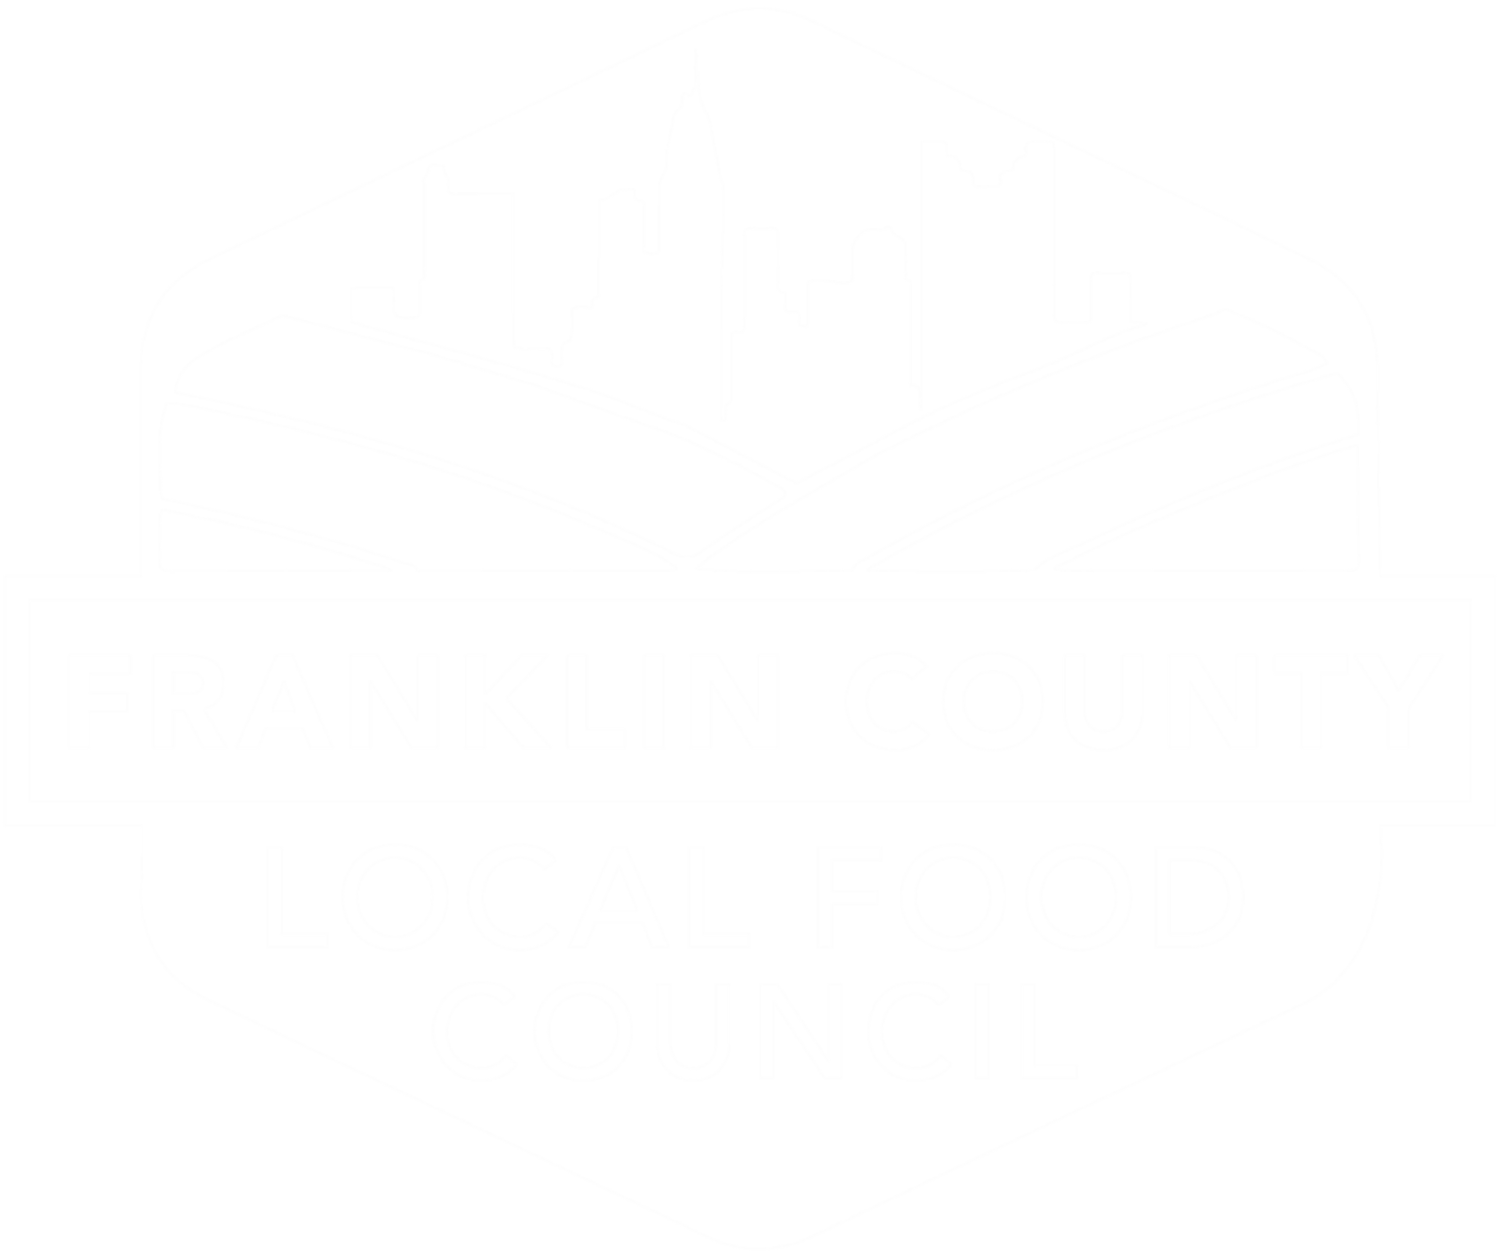 Franklin County Local Food Council